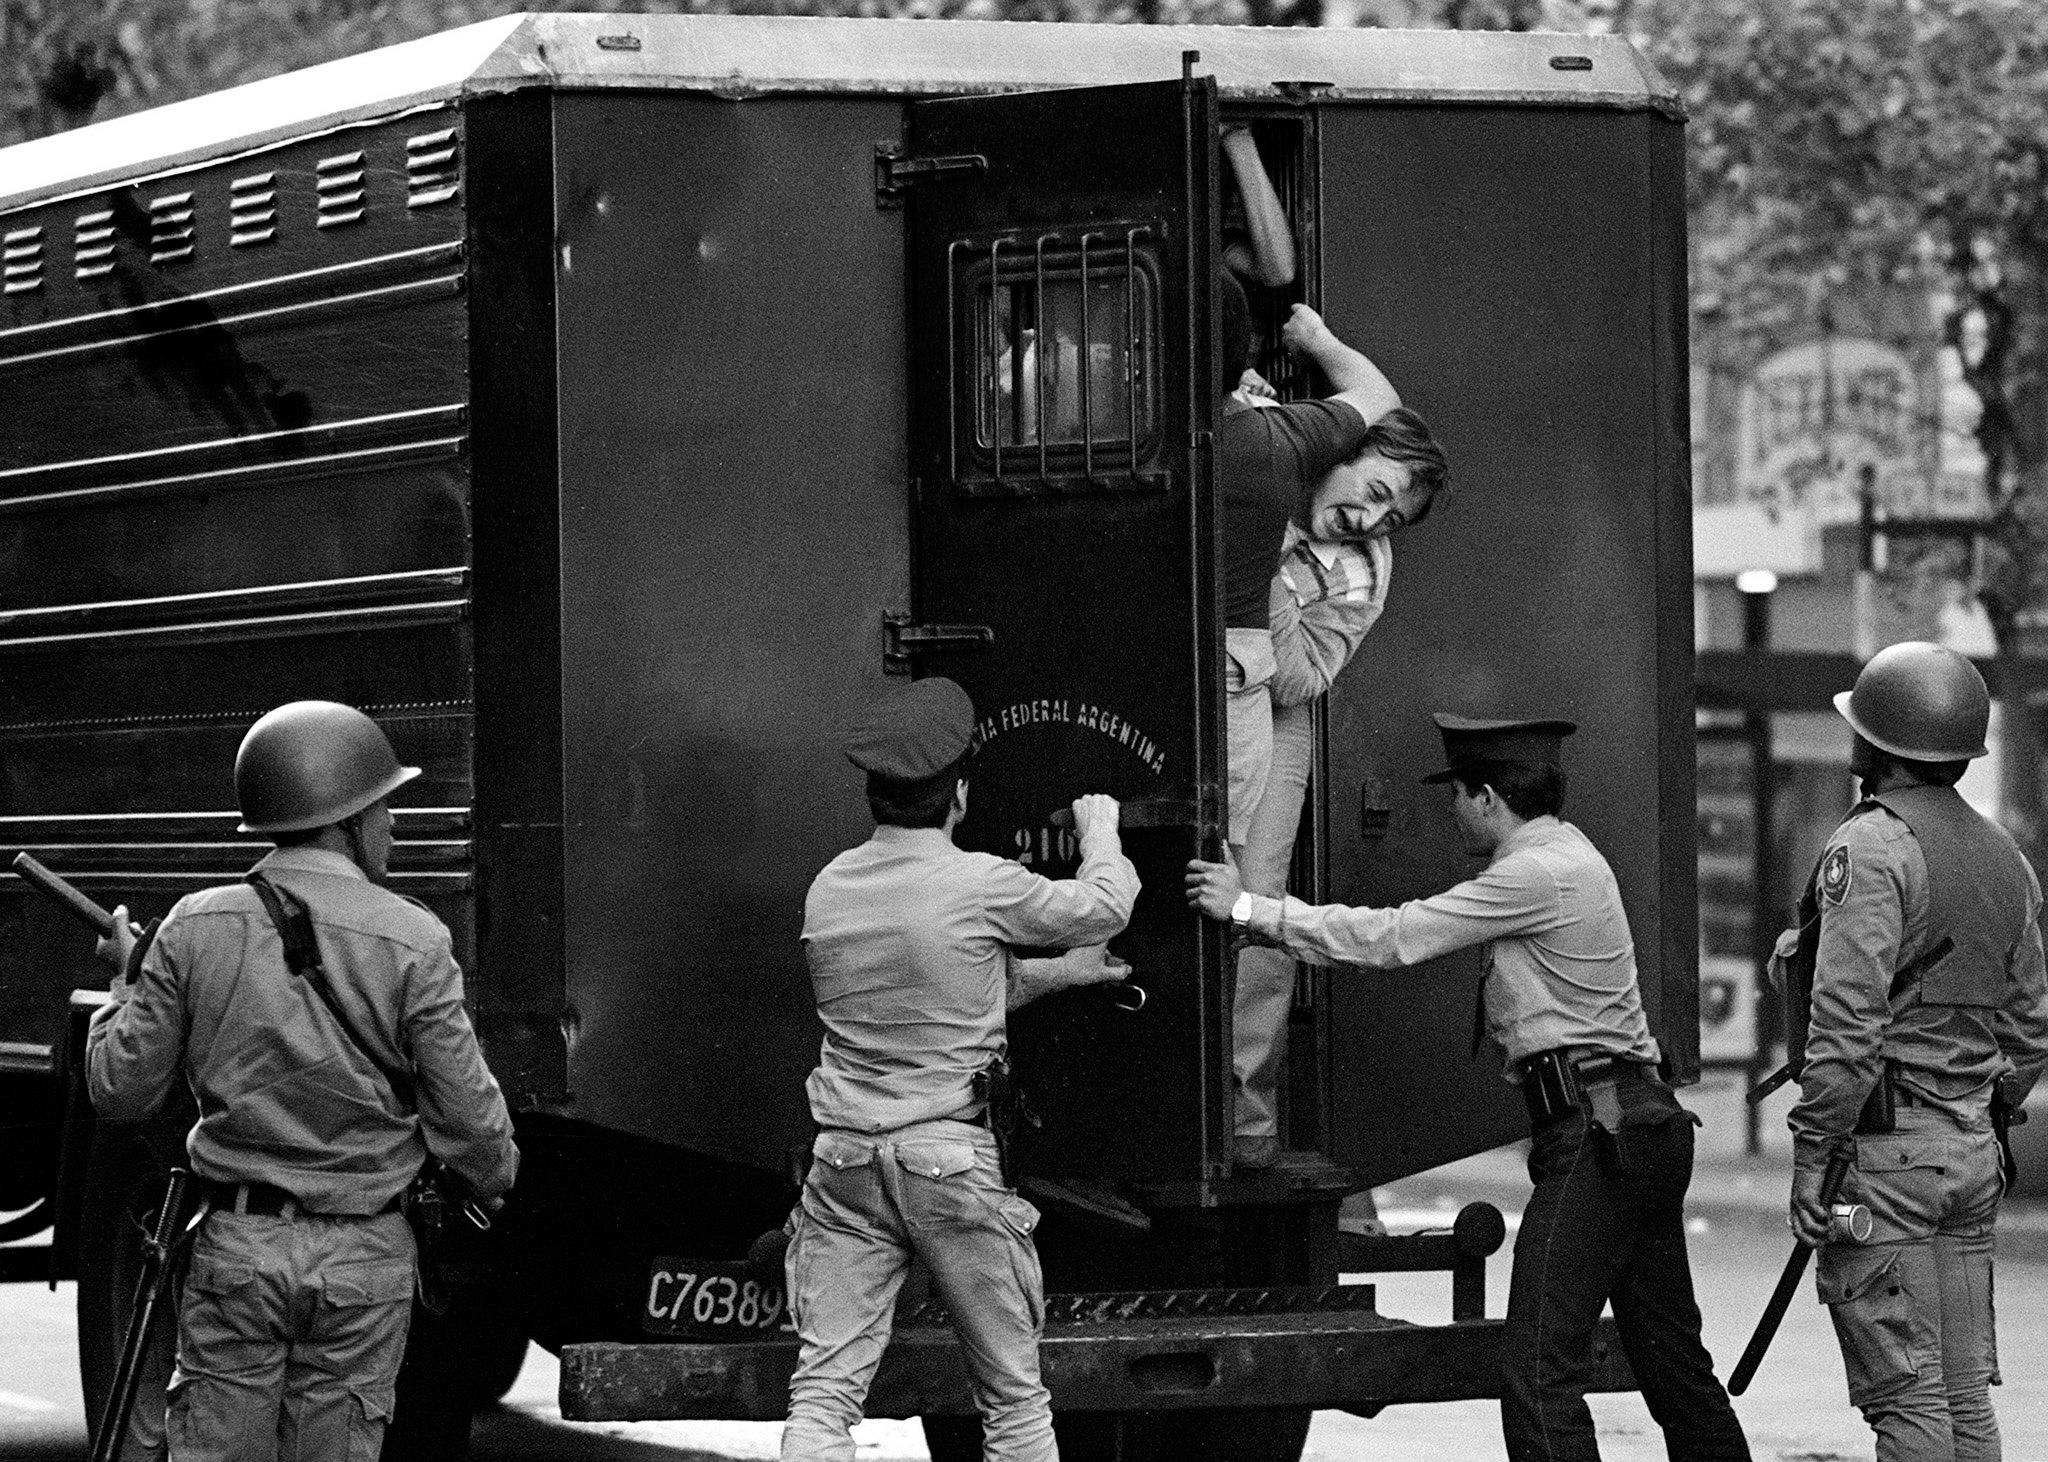 Argentine police arrest protesters marching against the military dictatorship in Buenos Aires, March 30, 1982 (AFP Photo/Daniel Garcia)